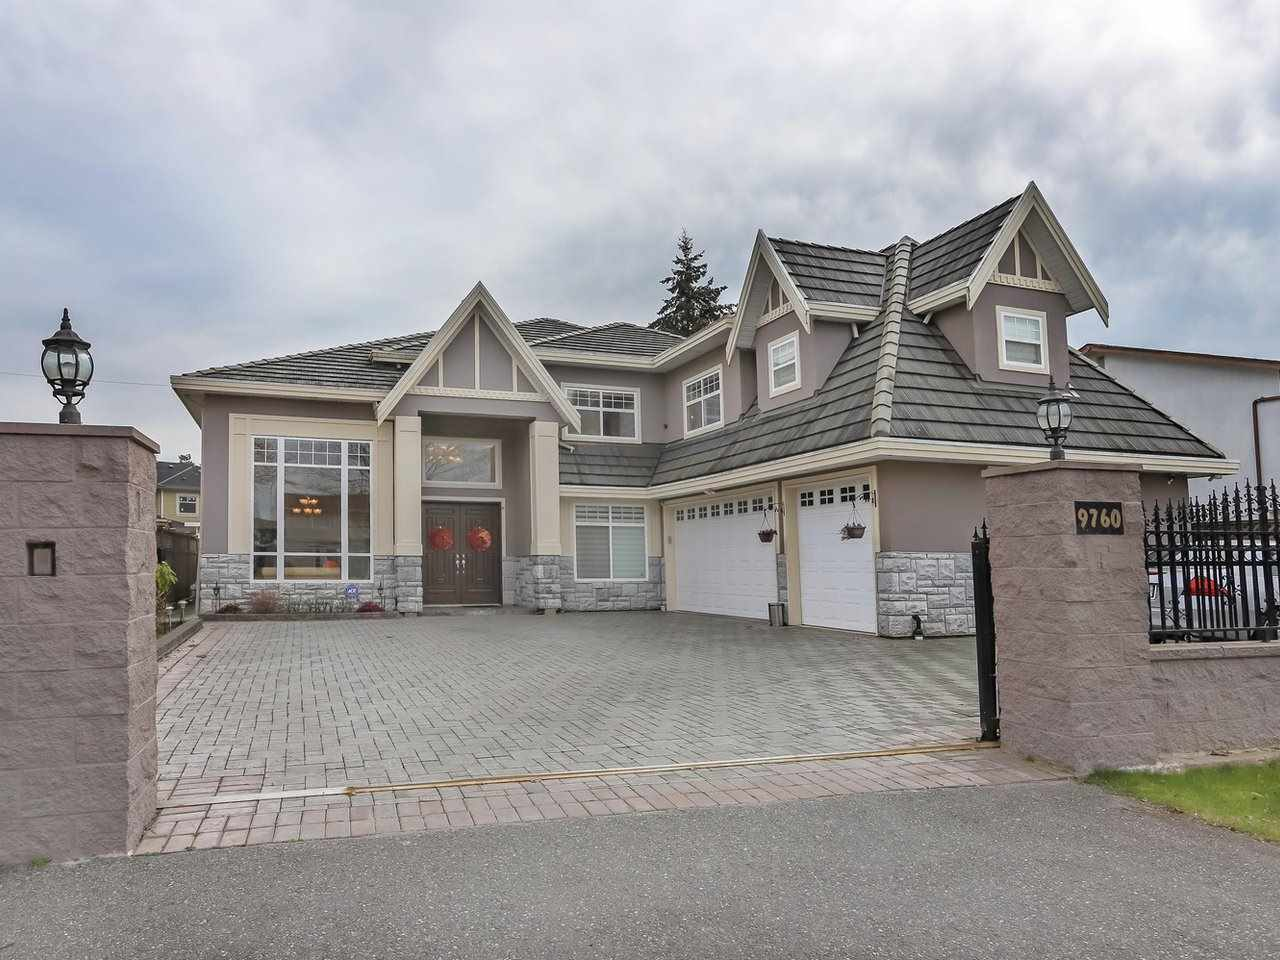 9760 SEACOTE ROAD - Ironwood House/Single Family for sale, 5 Bedrooms (R2494620)